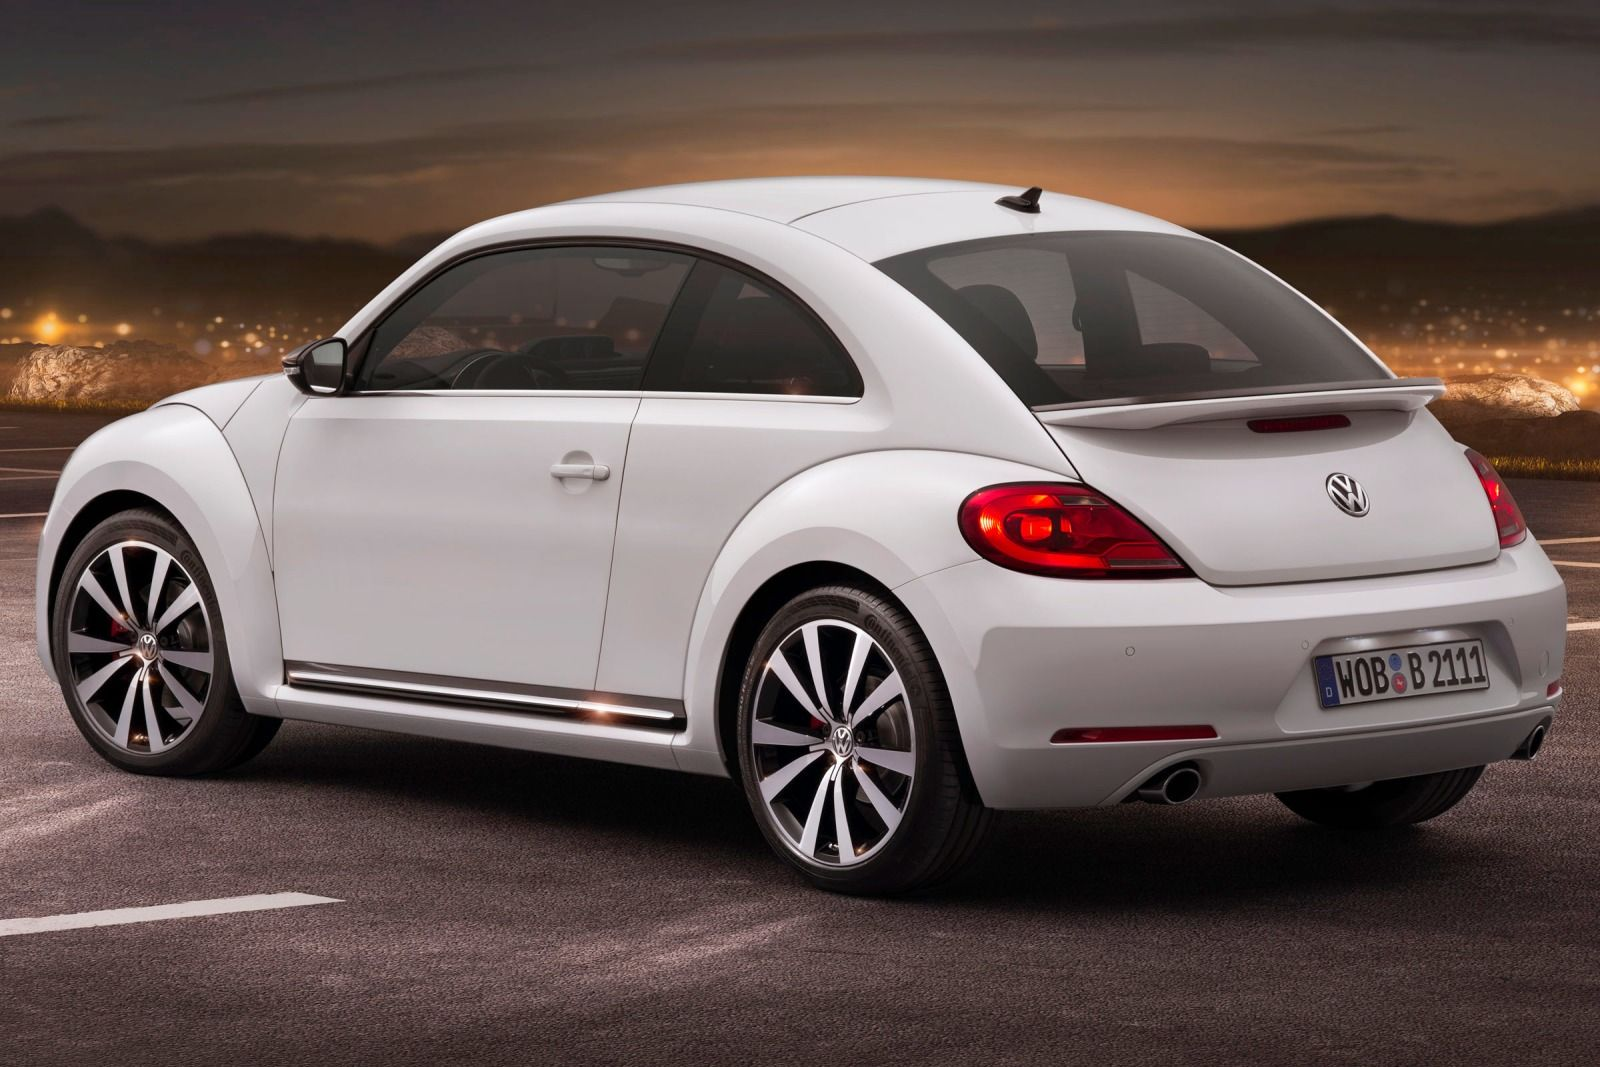 the volkswagen beetle The 2018 volkswagen beetle ranks in the bottom half of the subcompact car class it trails the competition in seating space, driving dynamics, features, and price the vw beetle is an ok subcompact car its turbocharged engine has ample pep for everyday driving, and its suspension provides a smooth.